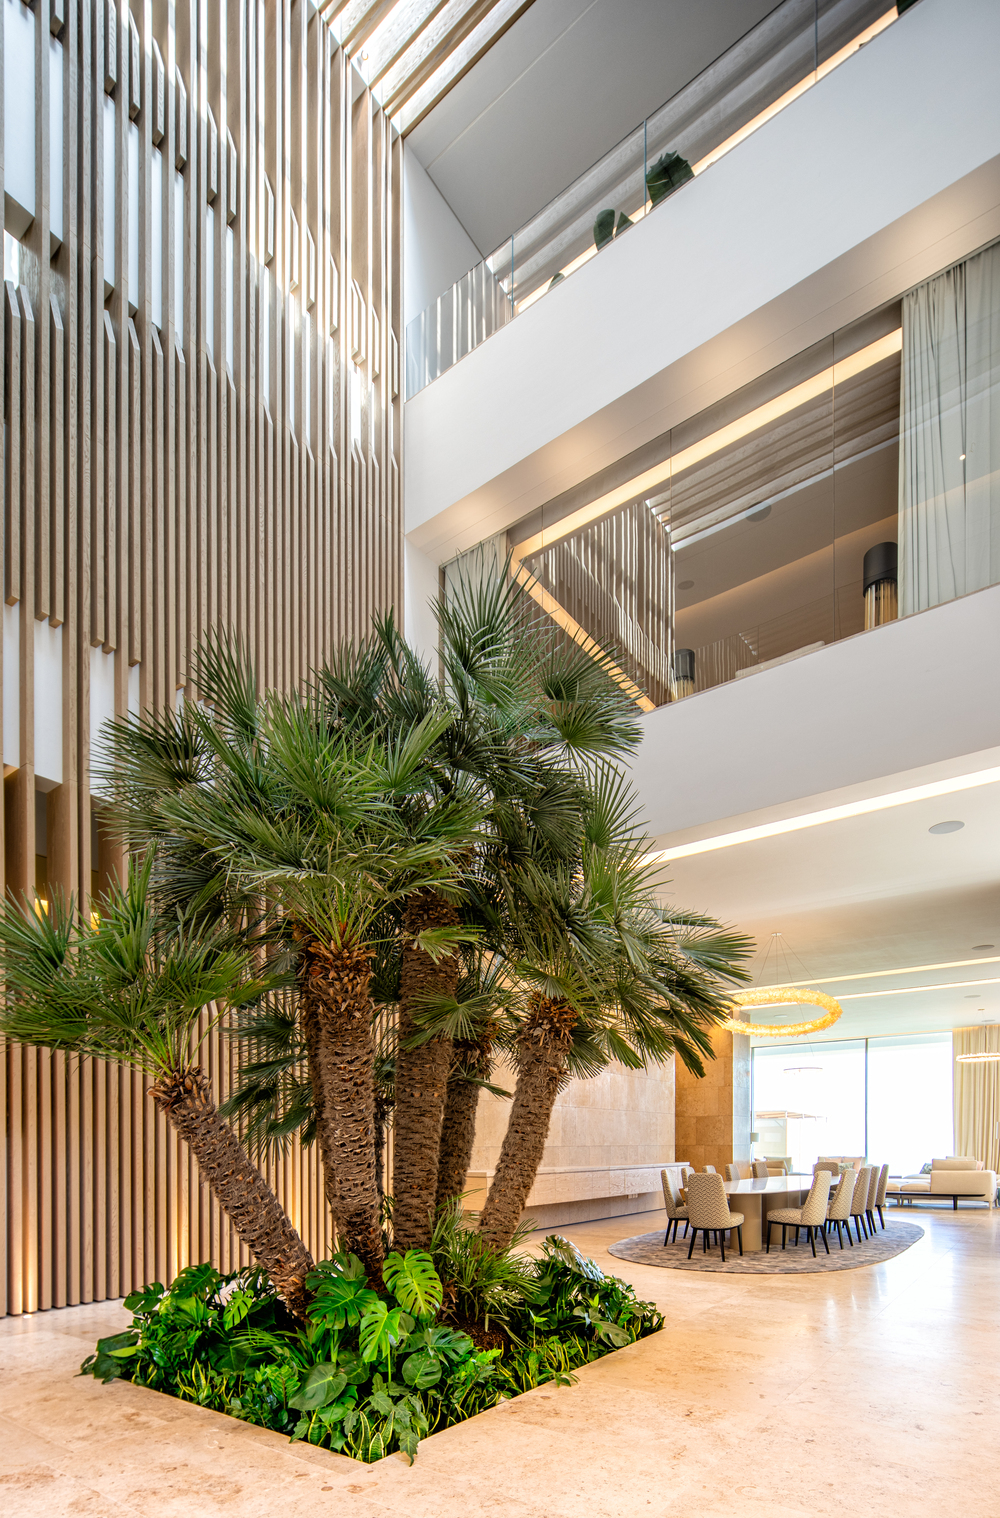 This is a view of the dining area adorned with a large cluster of tropical trees in an indoor garden.